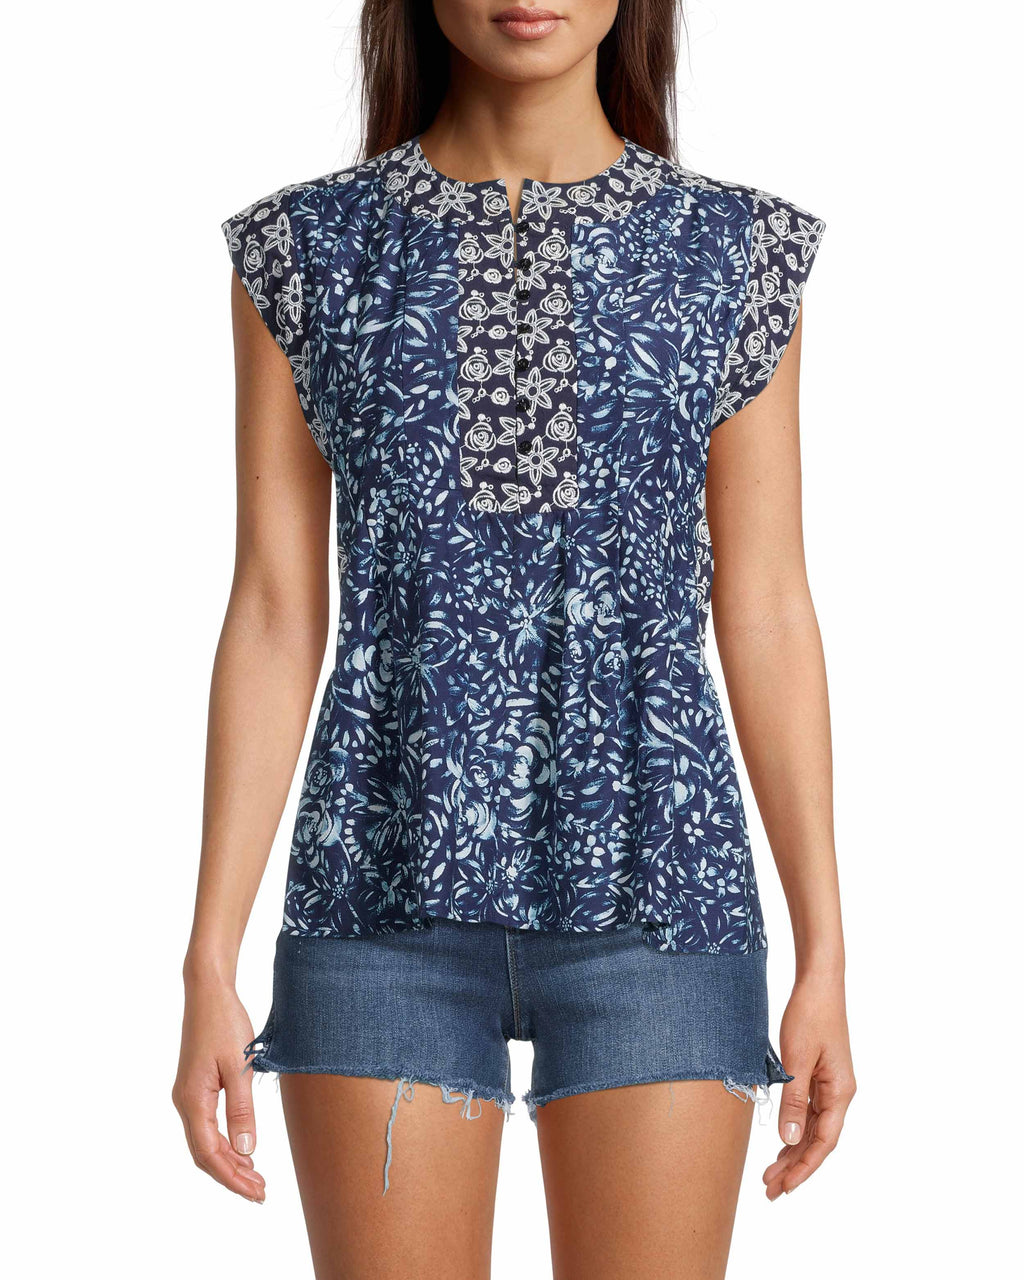 CT18534 - EVENING GARDEN EMBROIDERED SLEEVELESS BLOUSE - tops - blouses - Designed in our new evening garden print, this sleeveless blouse is embroidered with pretty floral details on the front and sleeves. Featuring subtle navy buttons up the front. Add 1 line break Stylist Tip: Pair with our cashmere poncho.